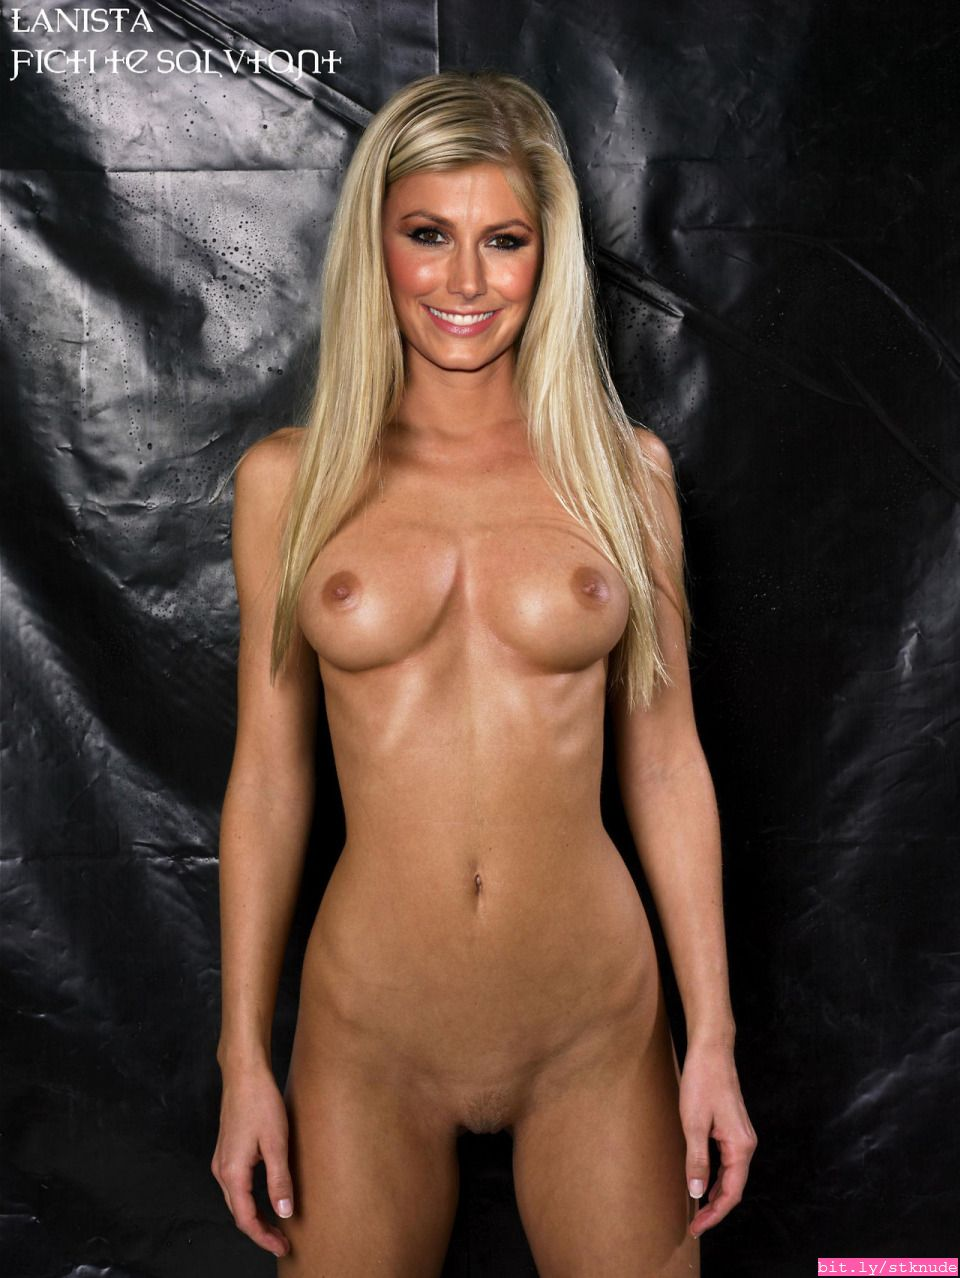 Stacy keibler naked new porno